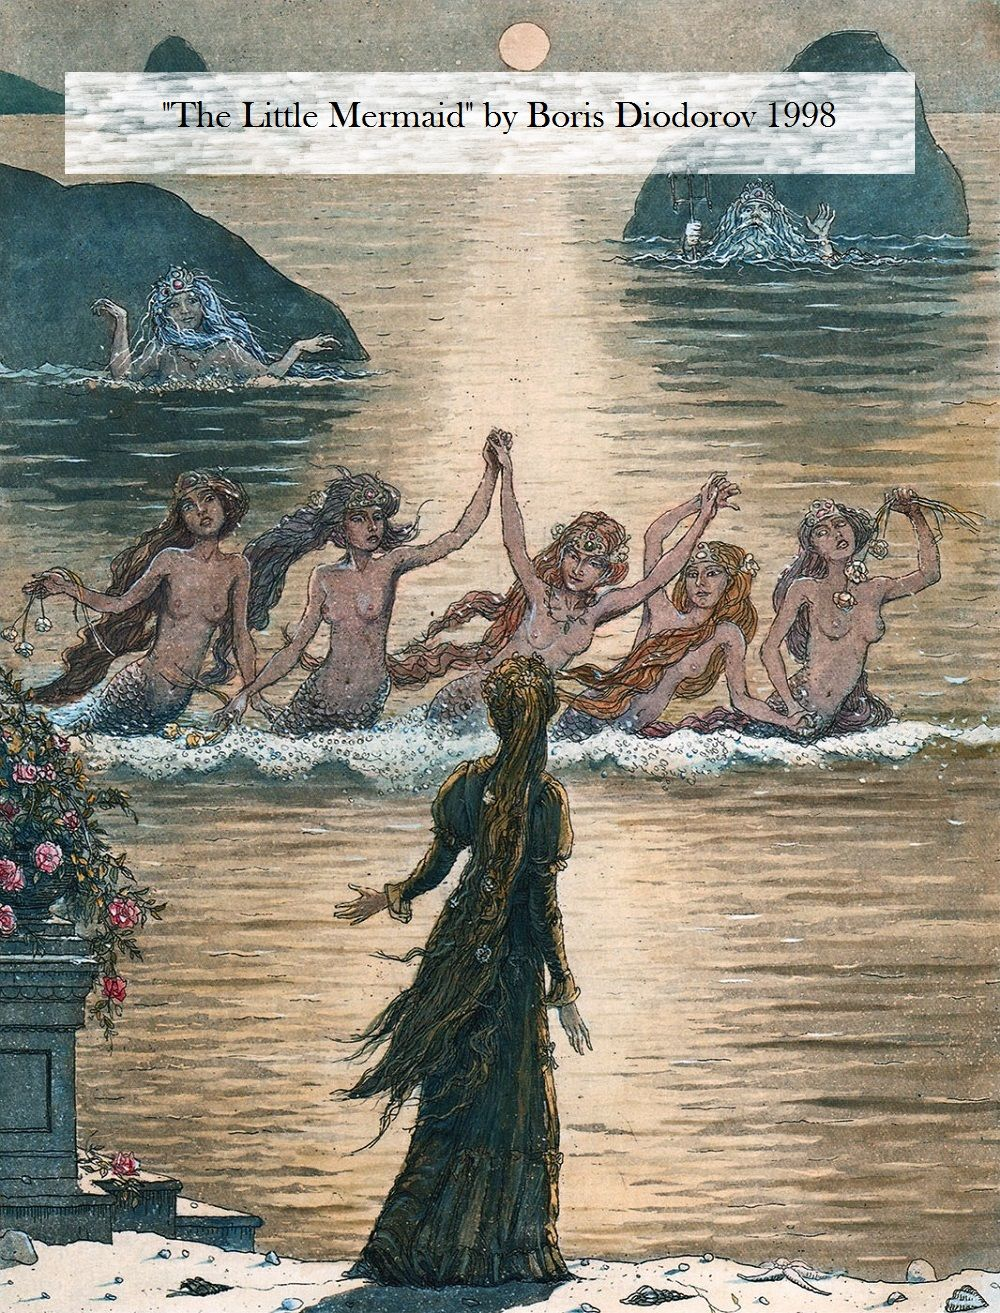 10 Mermaid Depictions